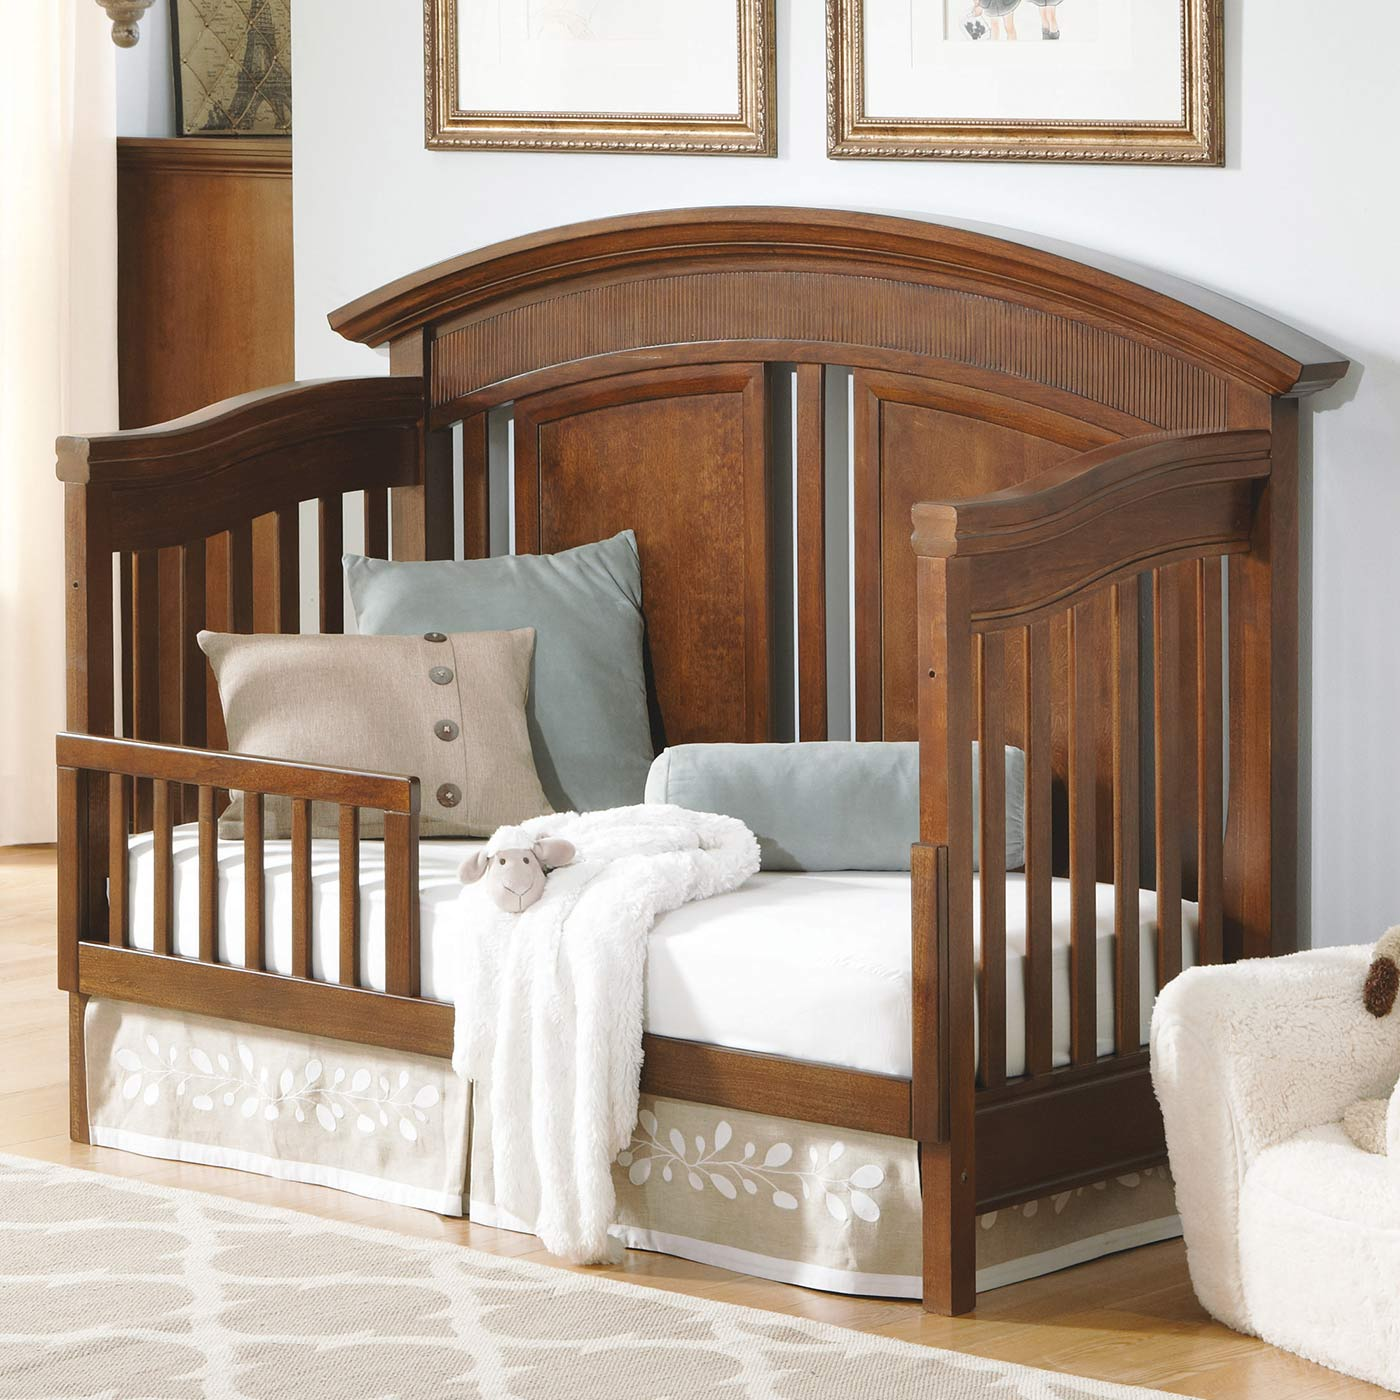 in babyletto allmodern furniture cribs reviews convertible crib pdp mercer